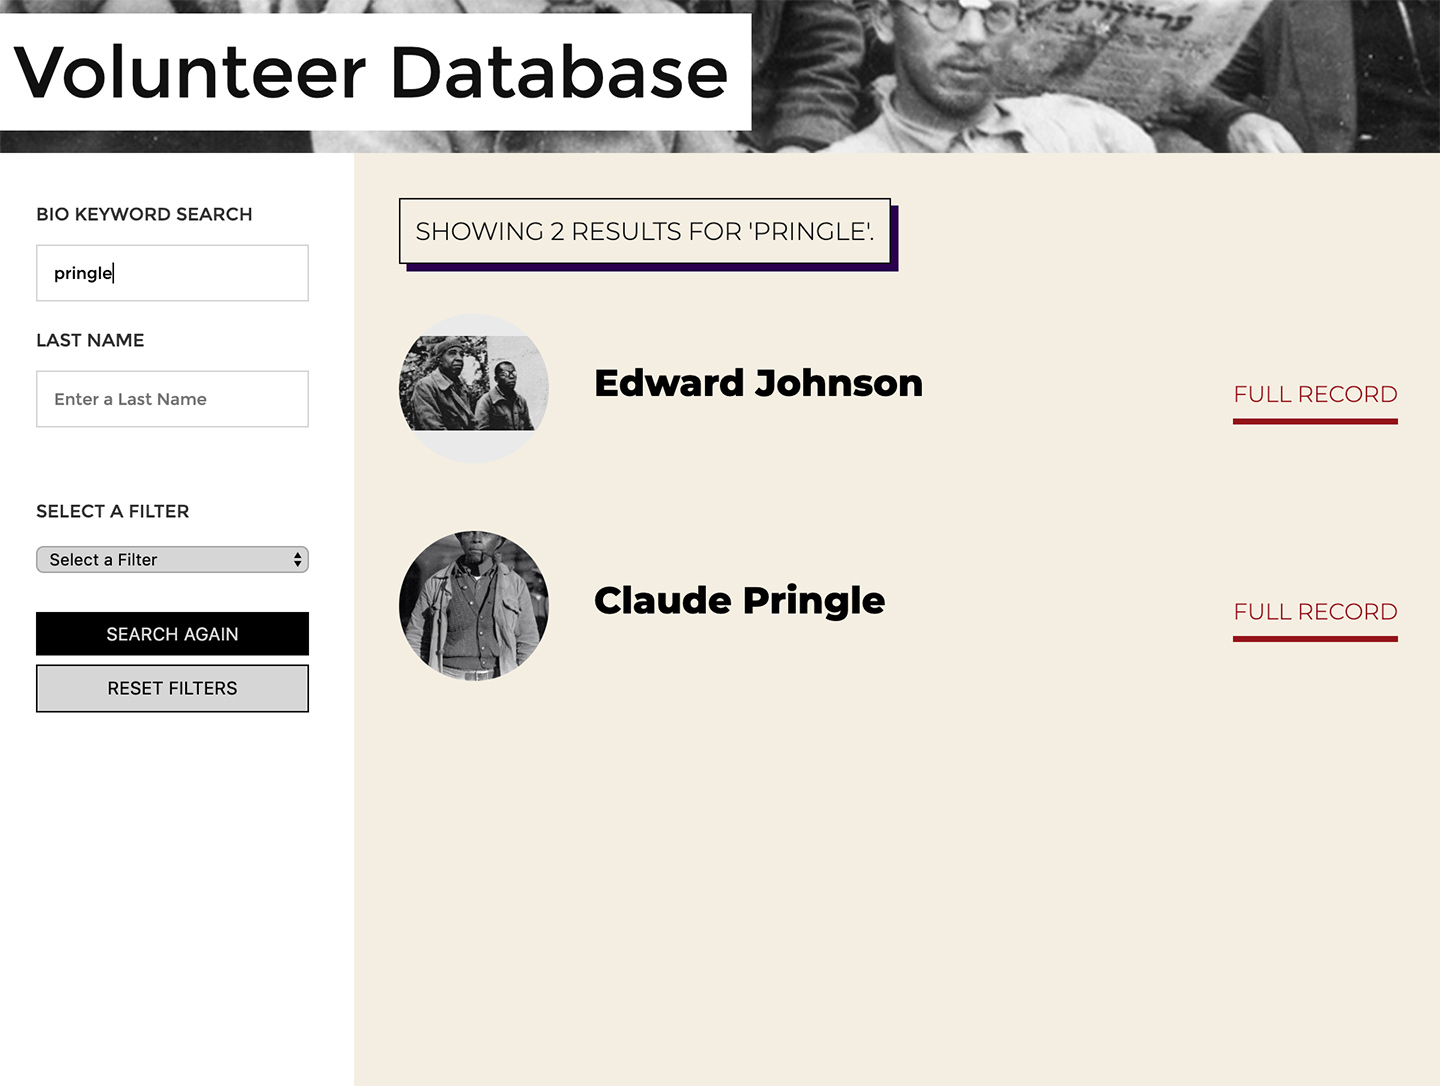 The Abraham Lincoln Brigade Archives (ALBA): Volunteer Database Results View